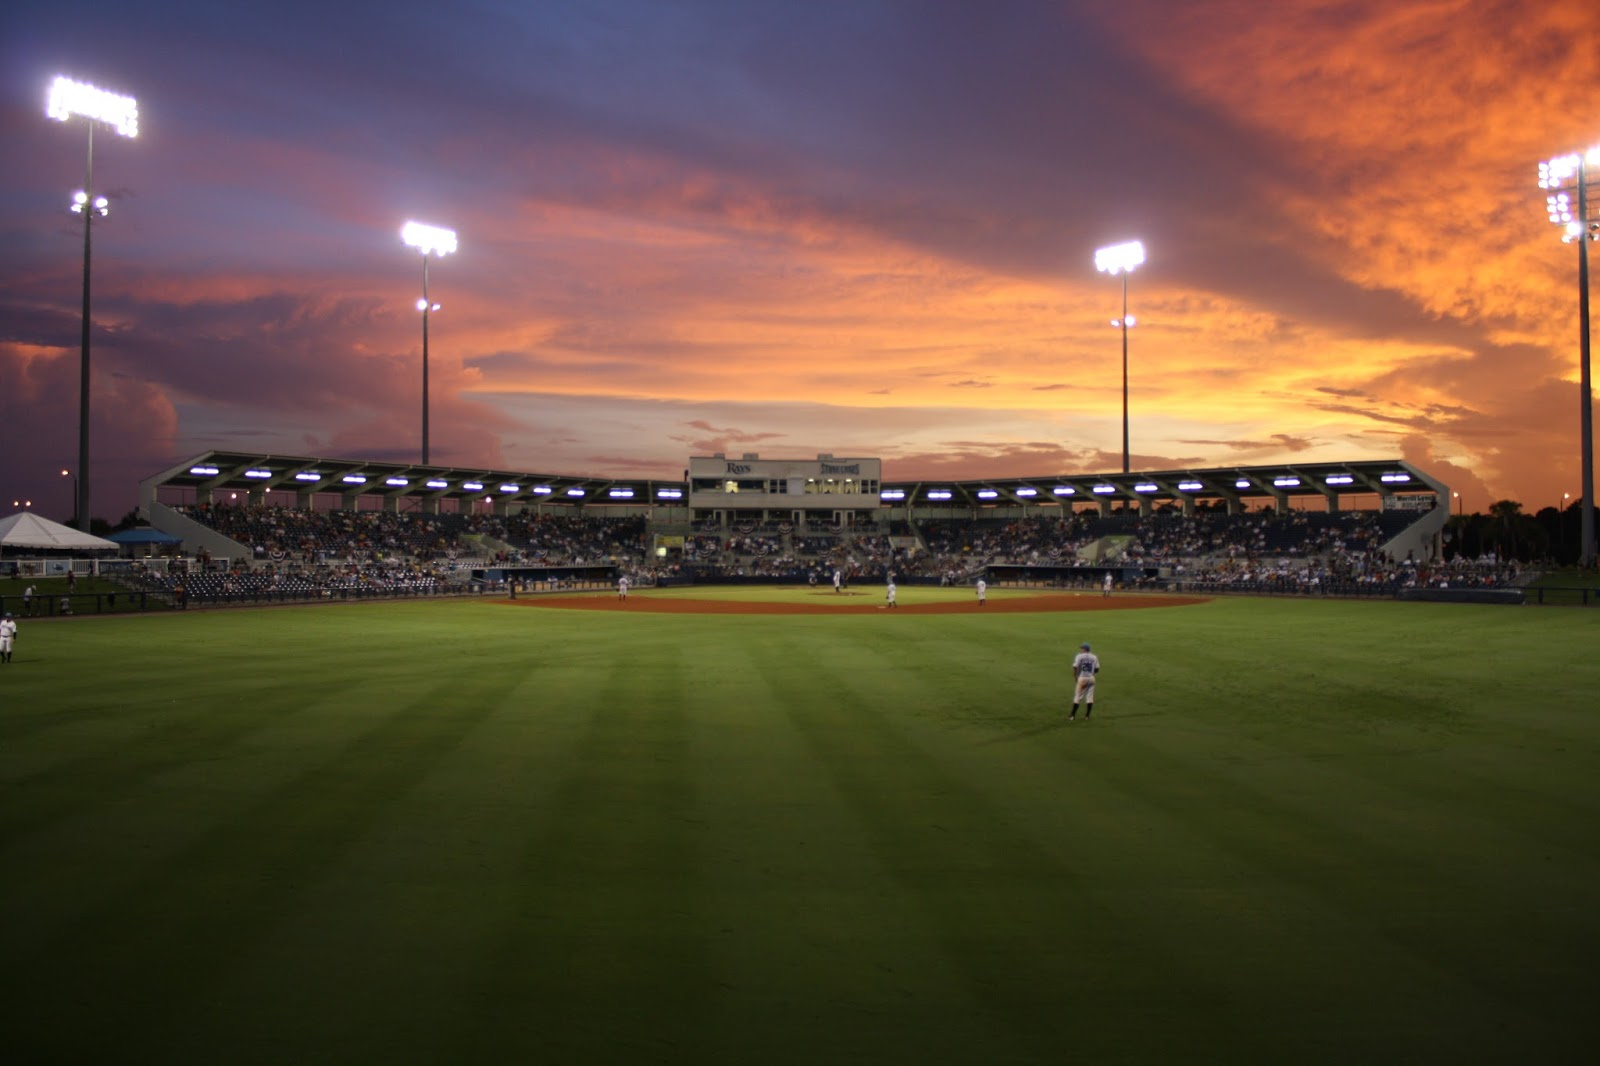 Photo of the Day: Sunset over the Ballpark | Donten ...